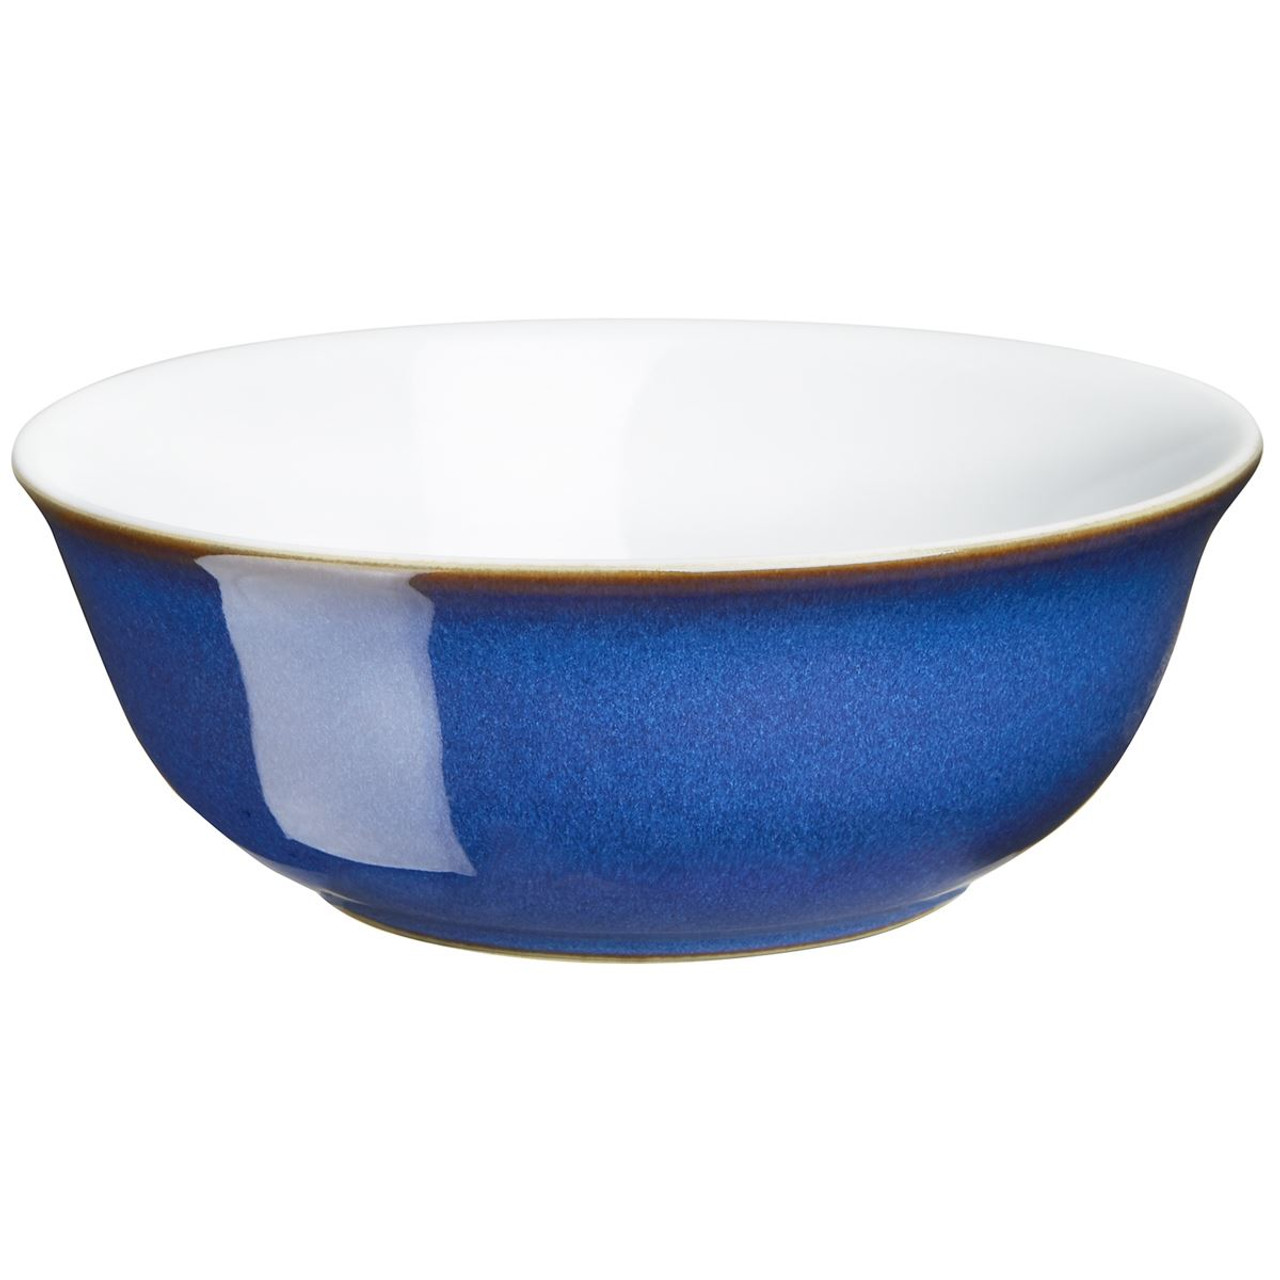 Denby Imperial Blue Cereal Bowl